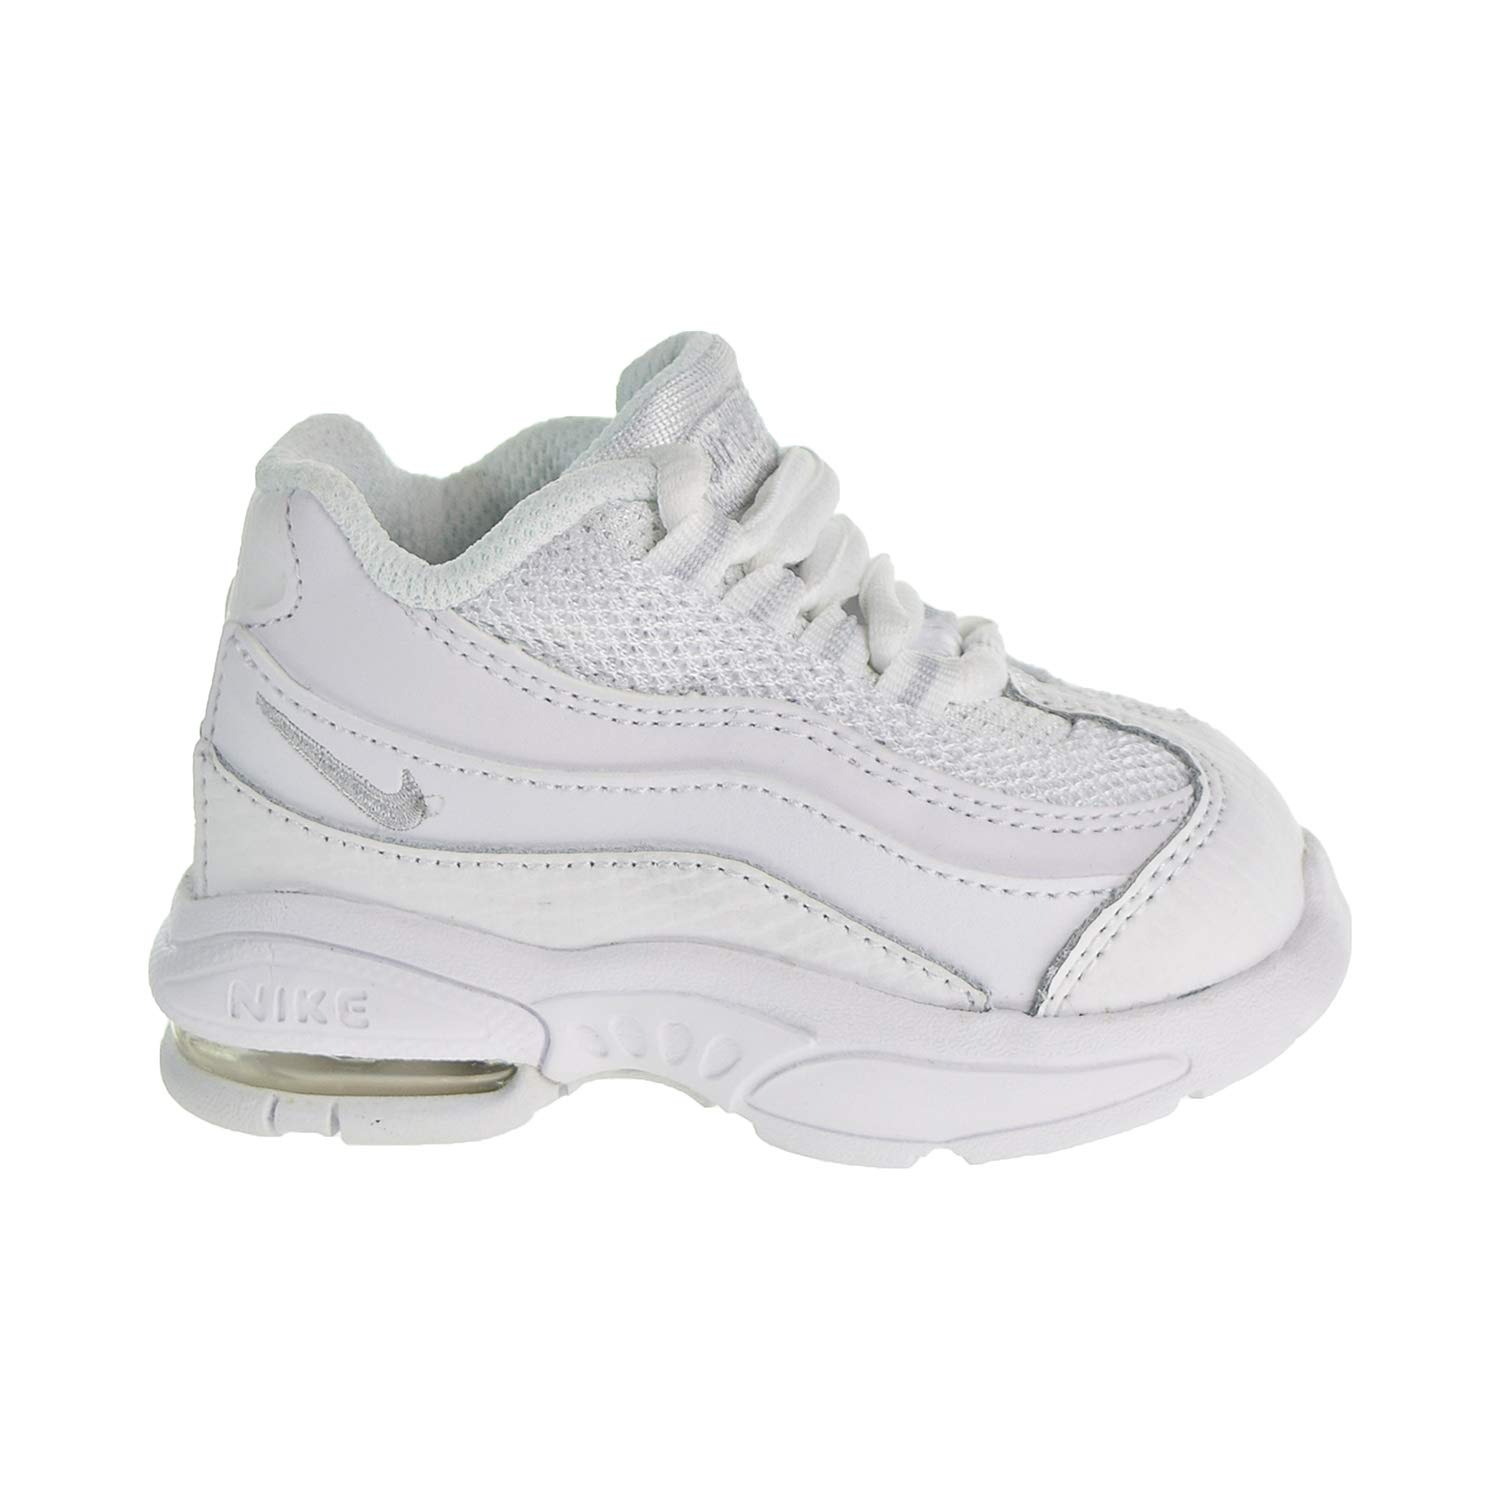 00a0cd76b3 Amazon.com | NIKE Little Max 95 Baby Toddlers Shoes White 311525-109 (8 M  US) | Sneakers